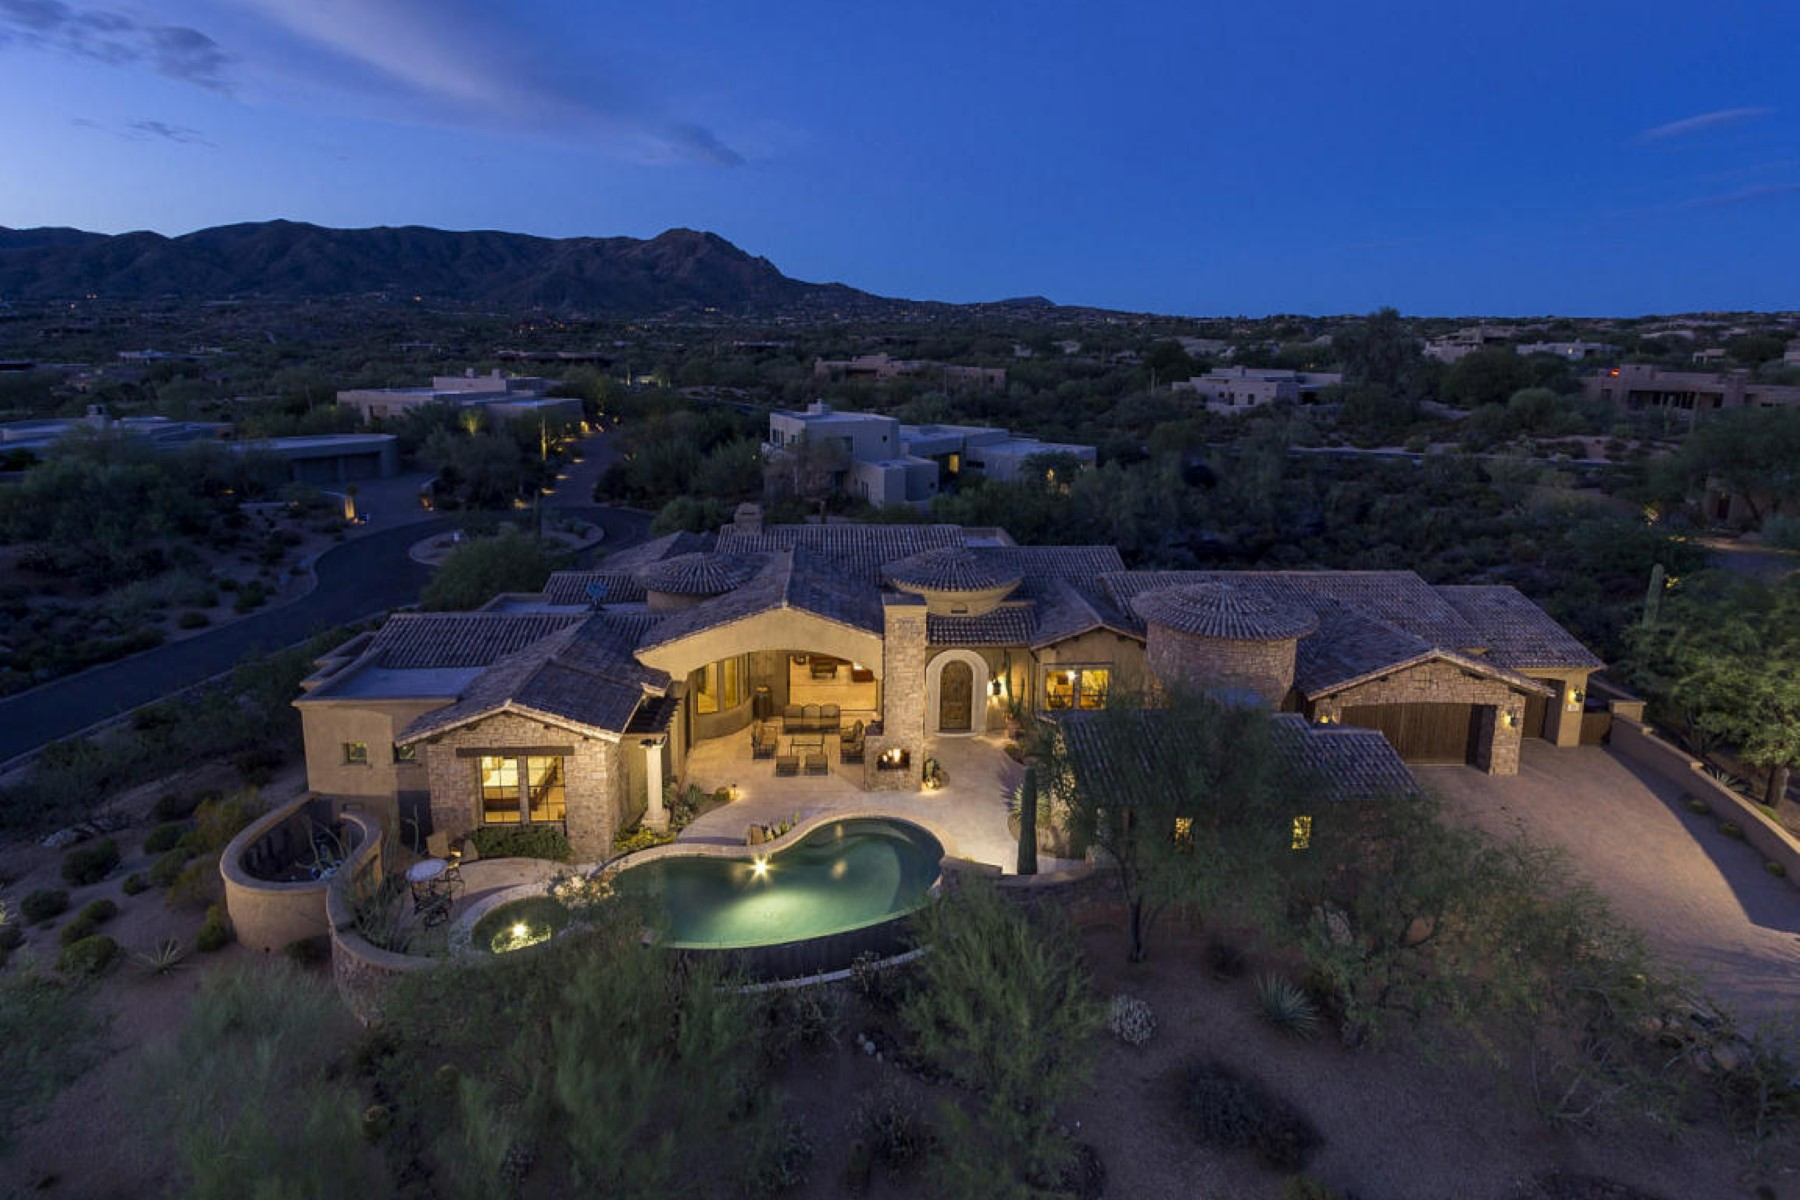 一戸建て のために 売買 アット Custom home designed by renowned home designer Beaux Graffin 10189 E Palo Brea Dr Scottsdale, アリゾナ, 85262 アメリカ合衆国